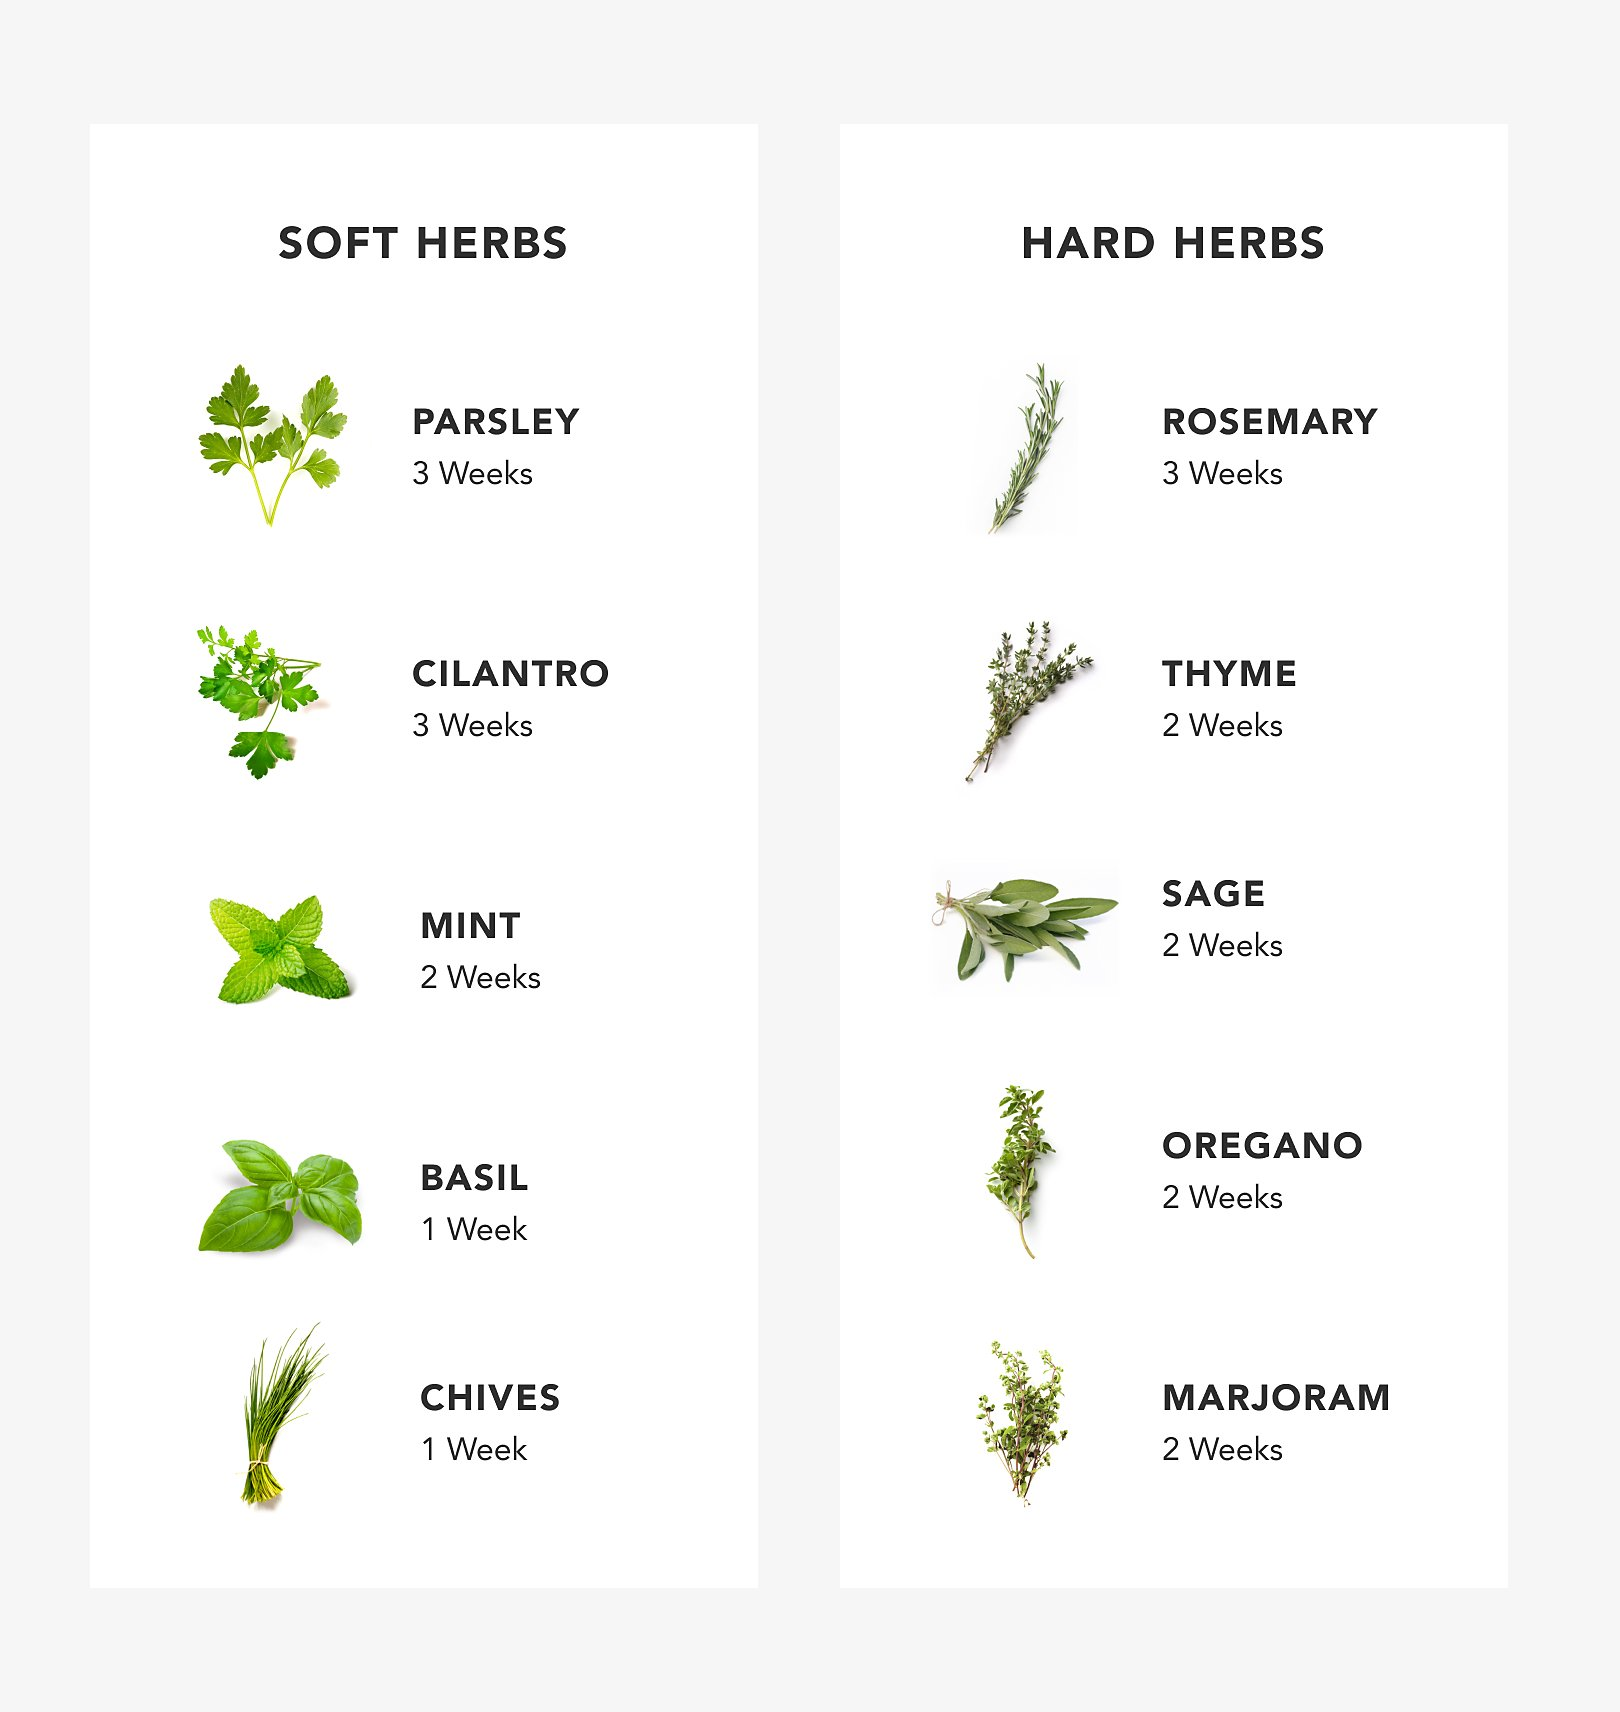 Chart with images of tender and woody herbs.